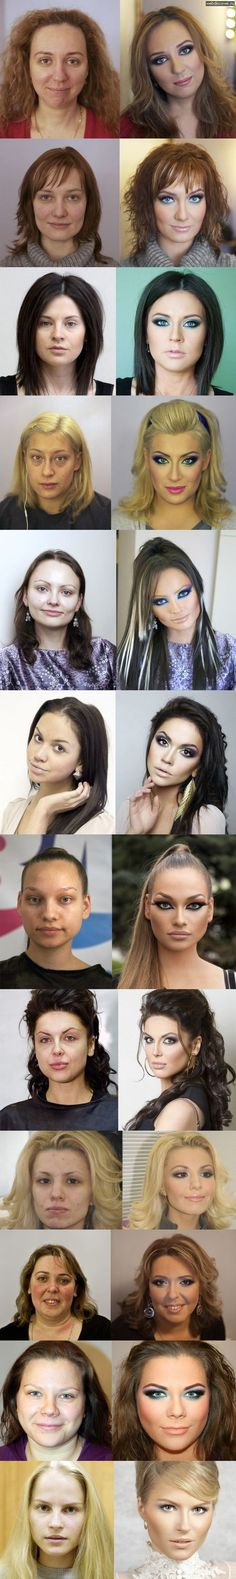 Before and After Makeup! Because makeup is our friend. :)wow!! Why we love make-up